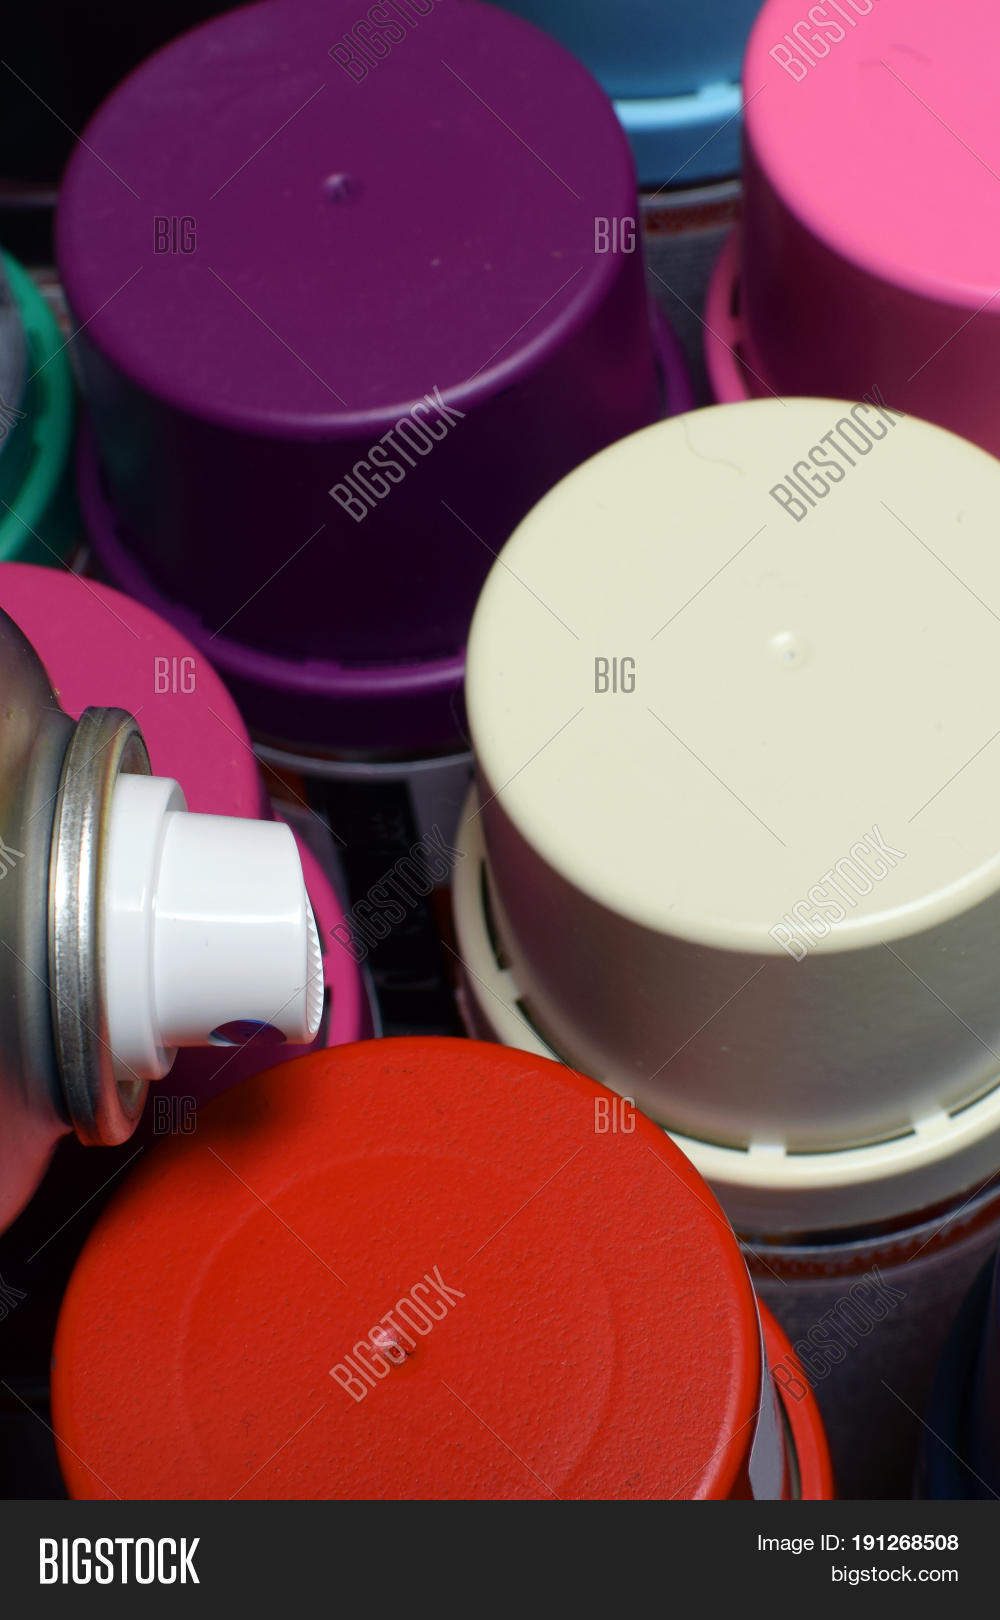 New Spray Paint Cans  Image & Photo (Free Trial) | Bigstock